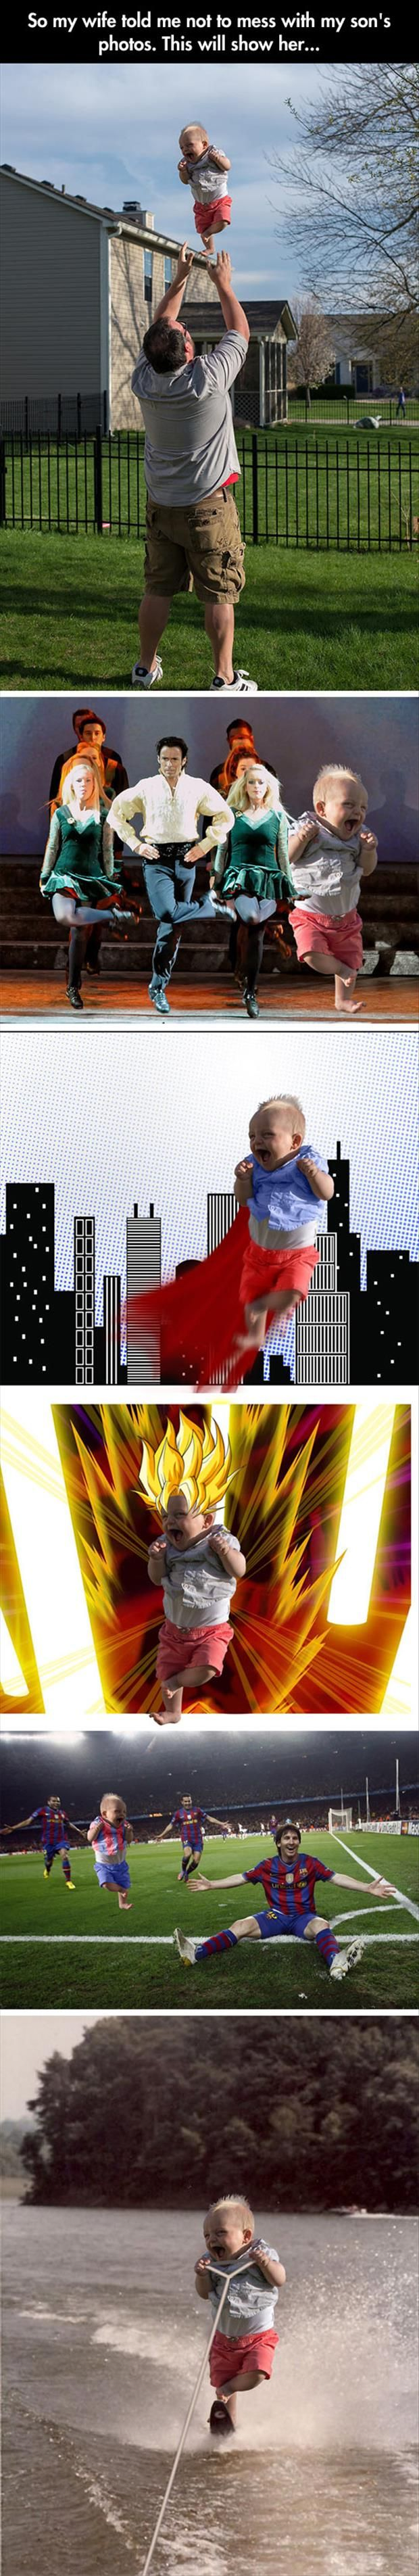 """So my wife told me not to mess with my son's photos..."" LOL: Son S Photos, Funny Pictures, Funnypictures, Sons, Dad Photoshops, Funny Stuff, Baby"